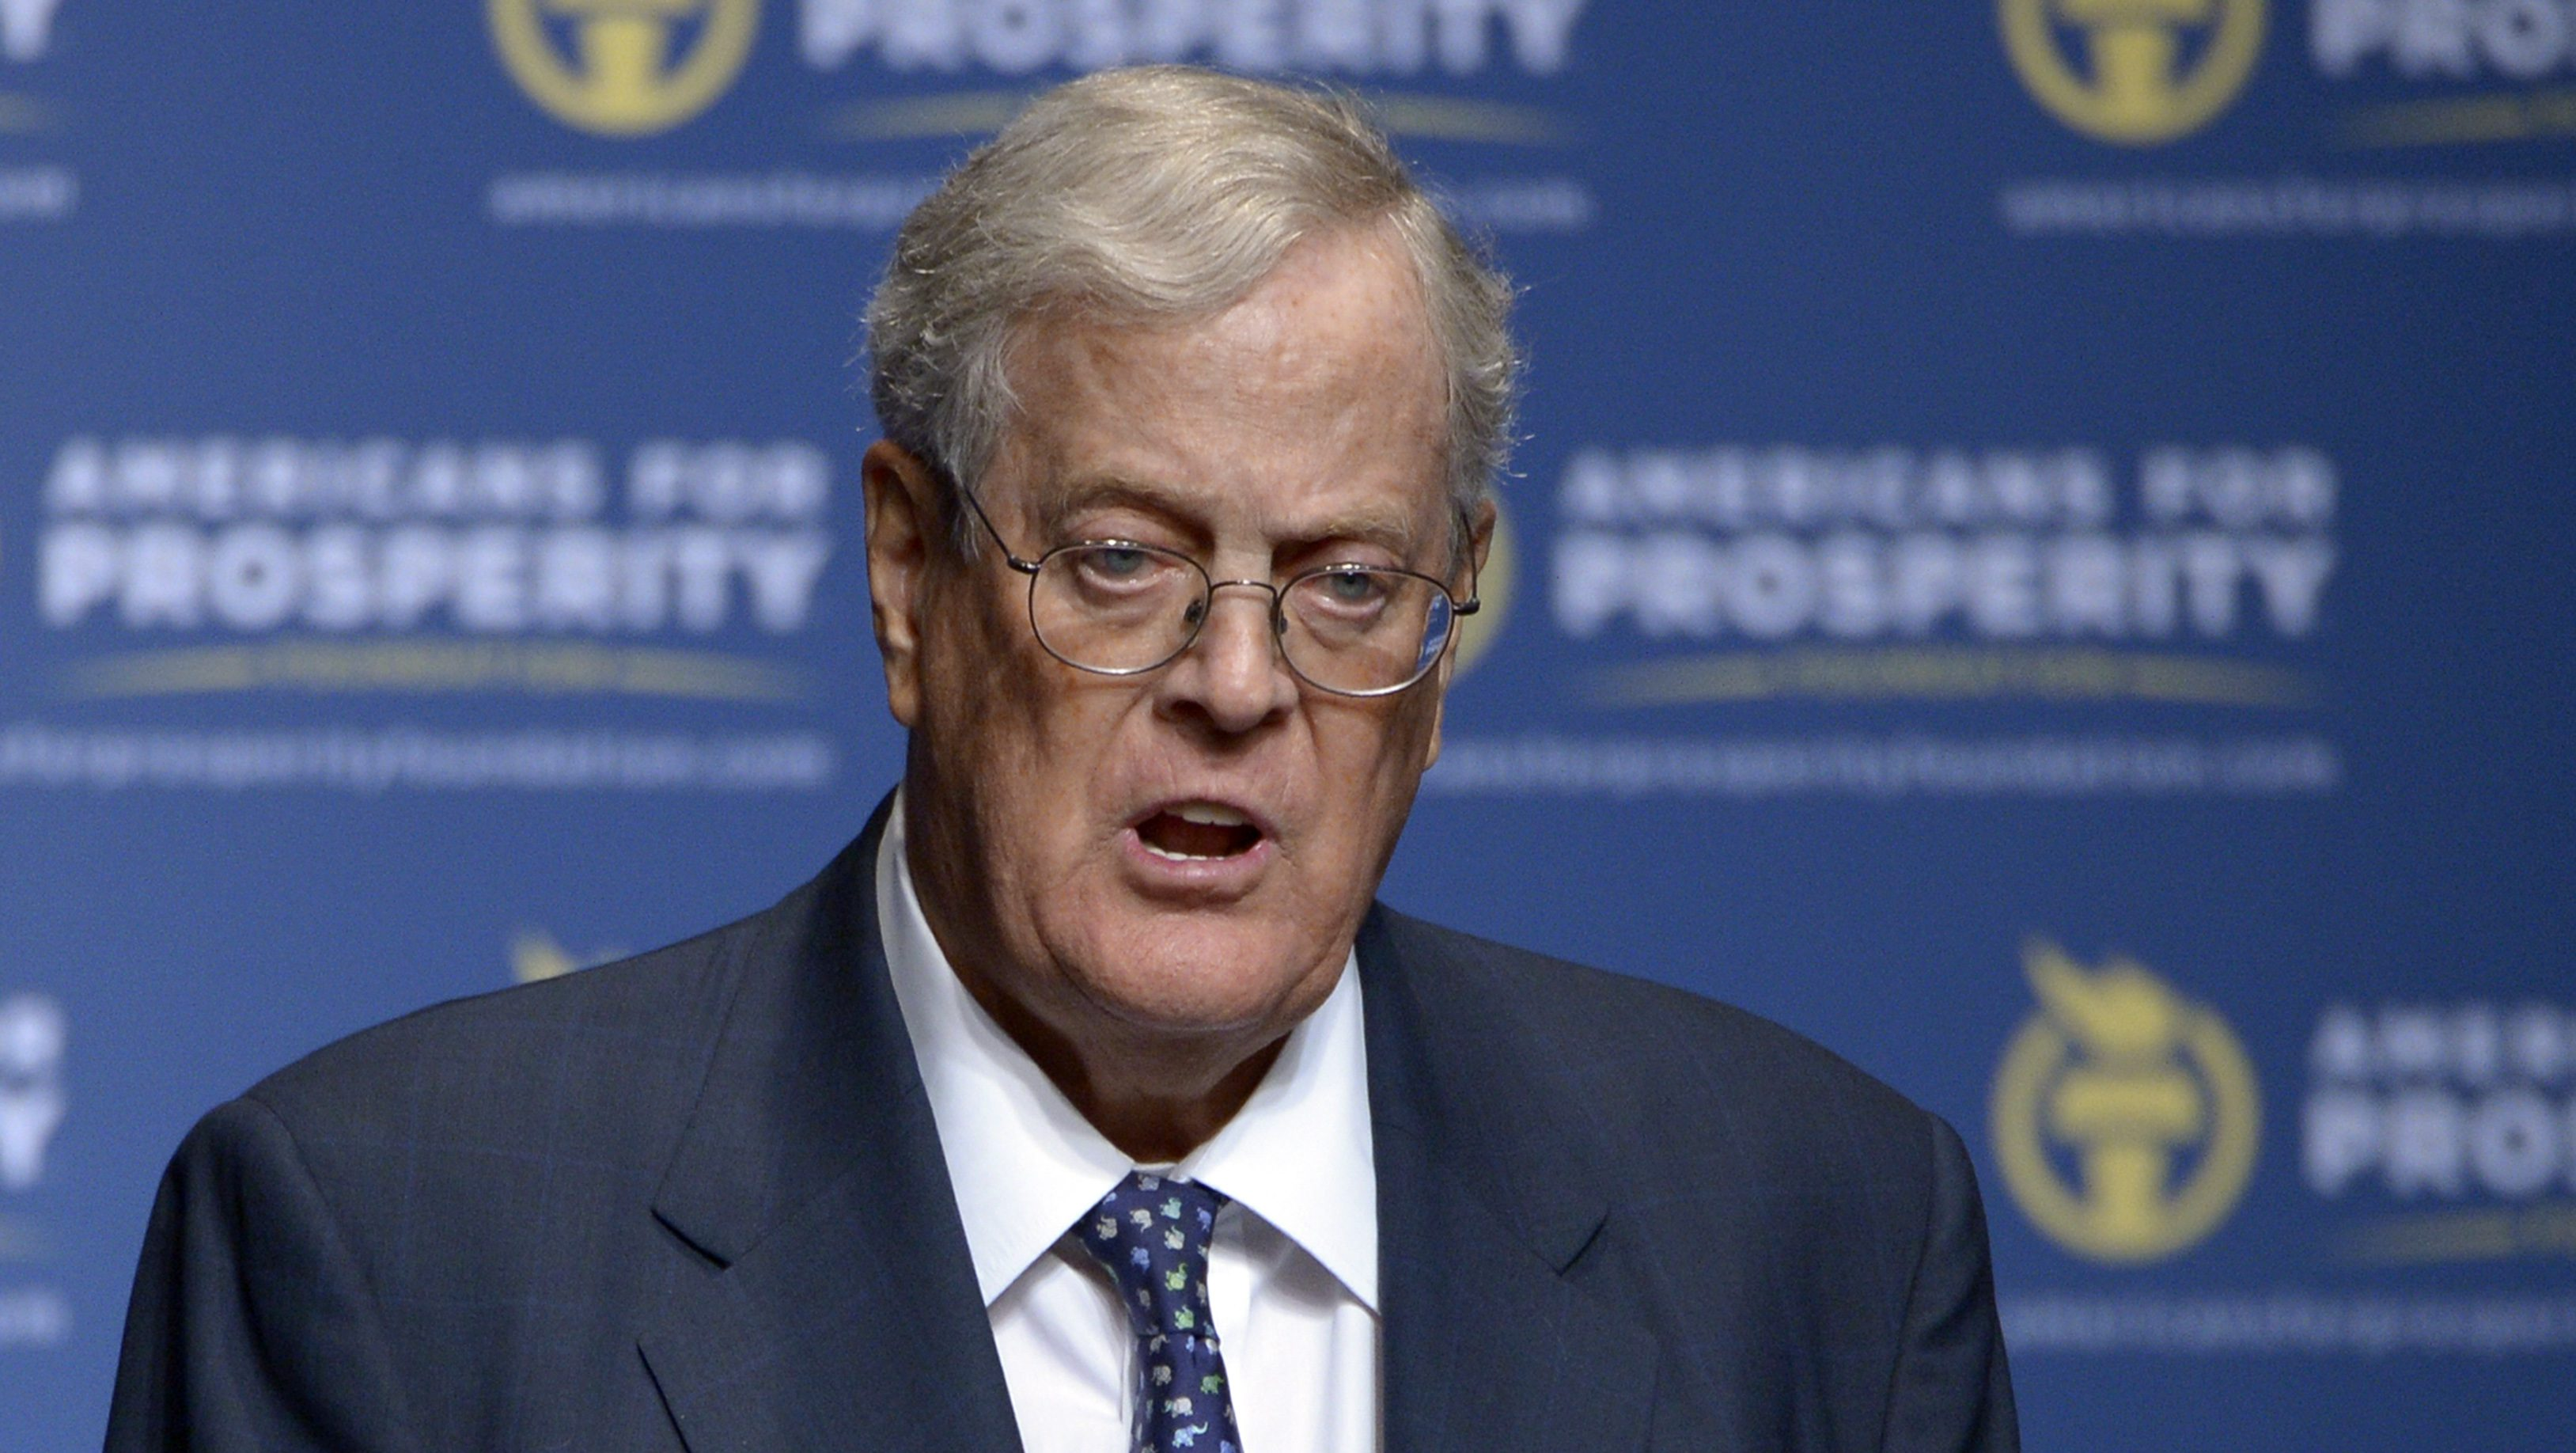 FILE - In this Aug. 30, 2013, file photo, Americans for Prosperity Foundation Chairman David Koch speaks in Orlando, Fla. The United Negro College Fund announced a $25 million grant from Koch Industries Inc. and the Charles Koch Foundation, a large donation from the conservative powerhouse Koch name that Democrats have sought to vilify heading into the 2014 mid-term elections. (AP Photo/Phelan M. Ebenhack, File)